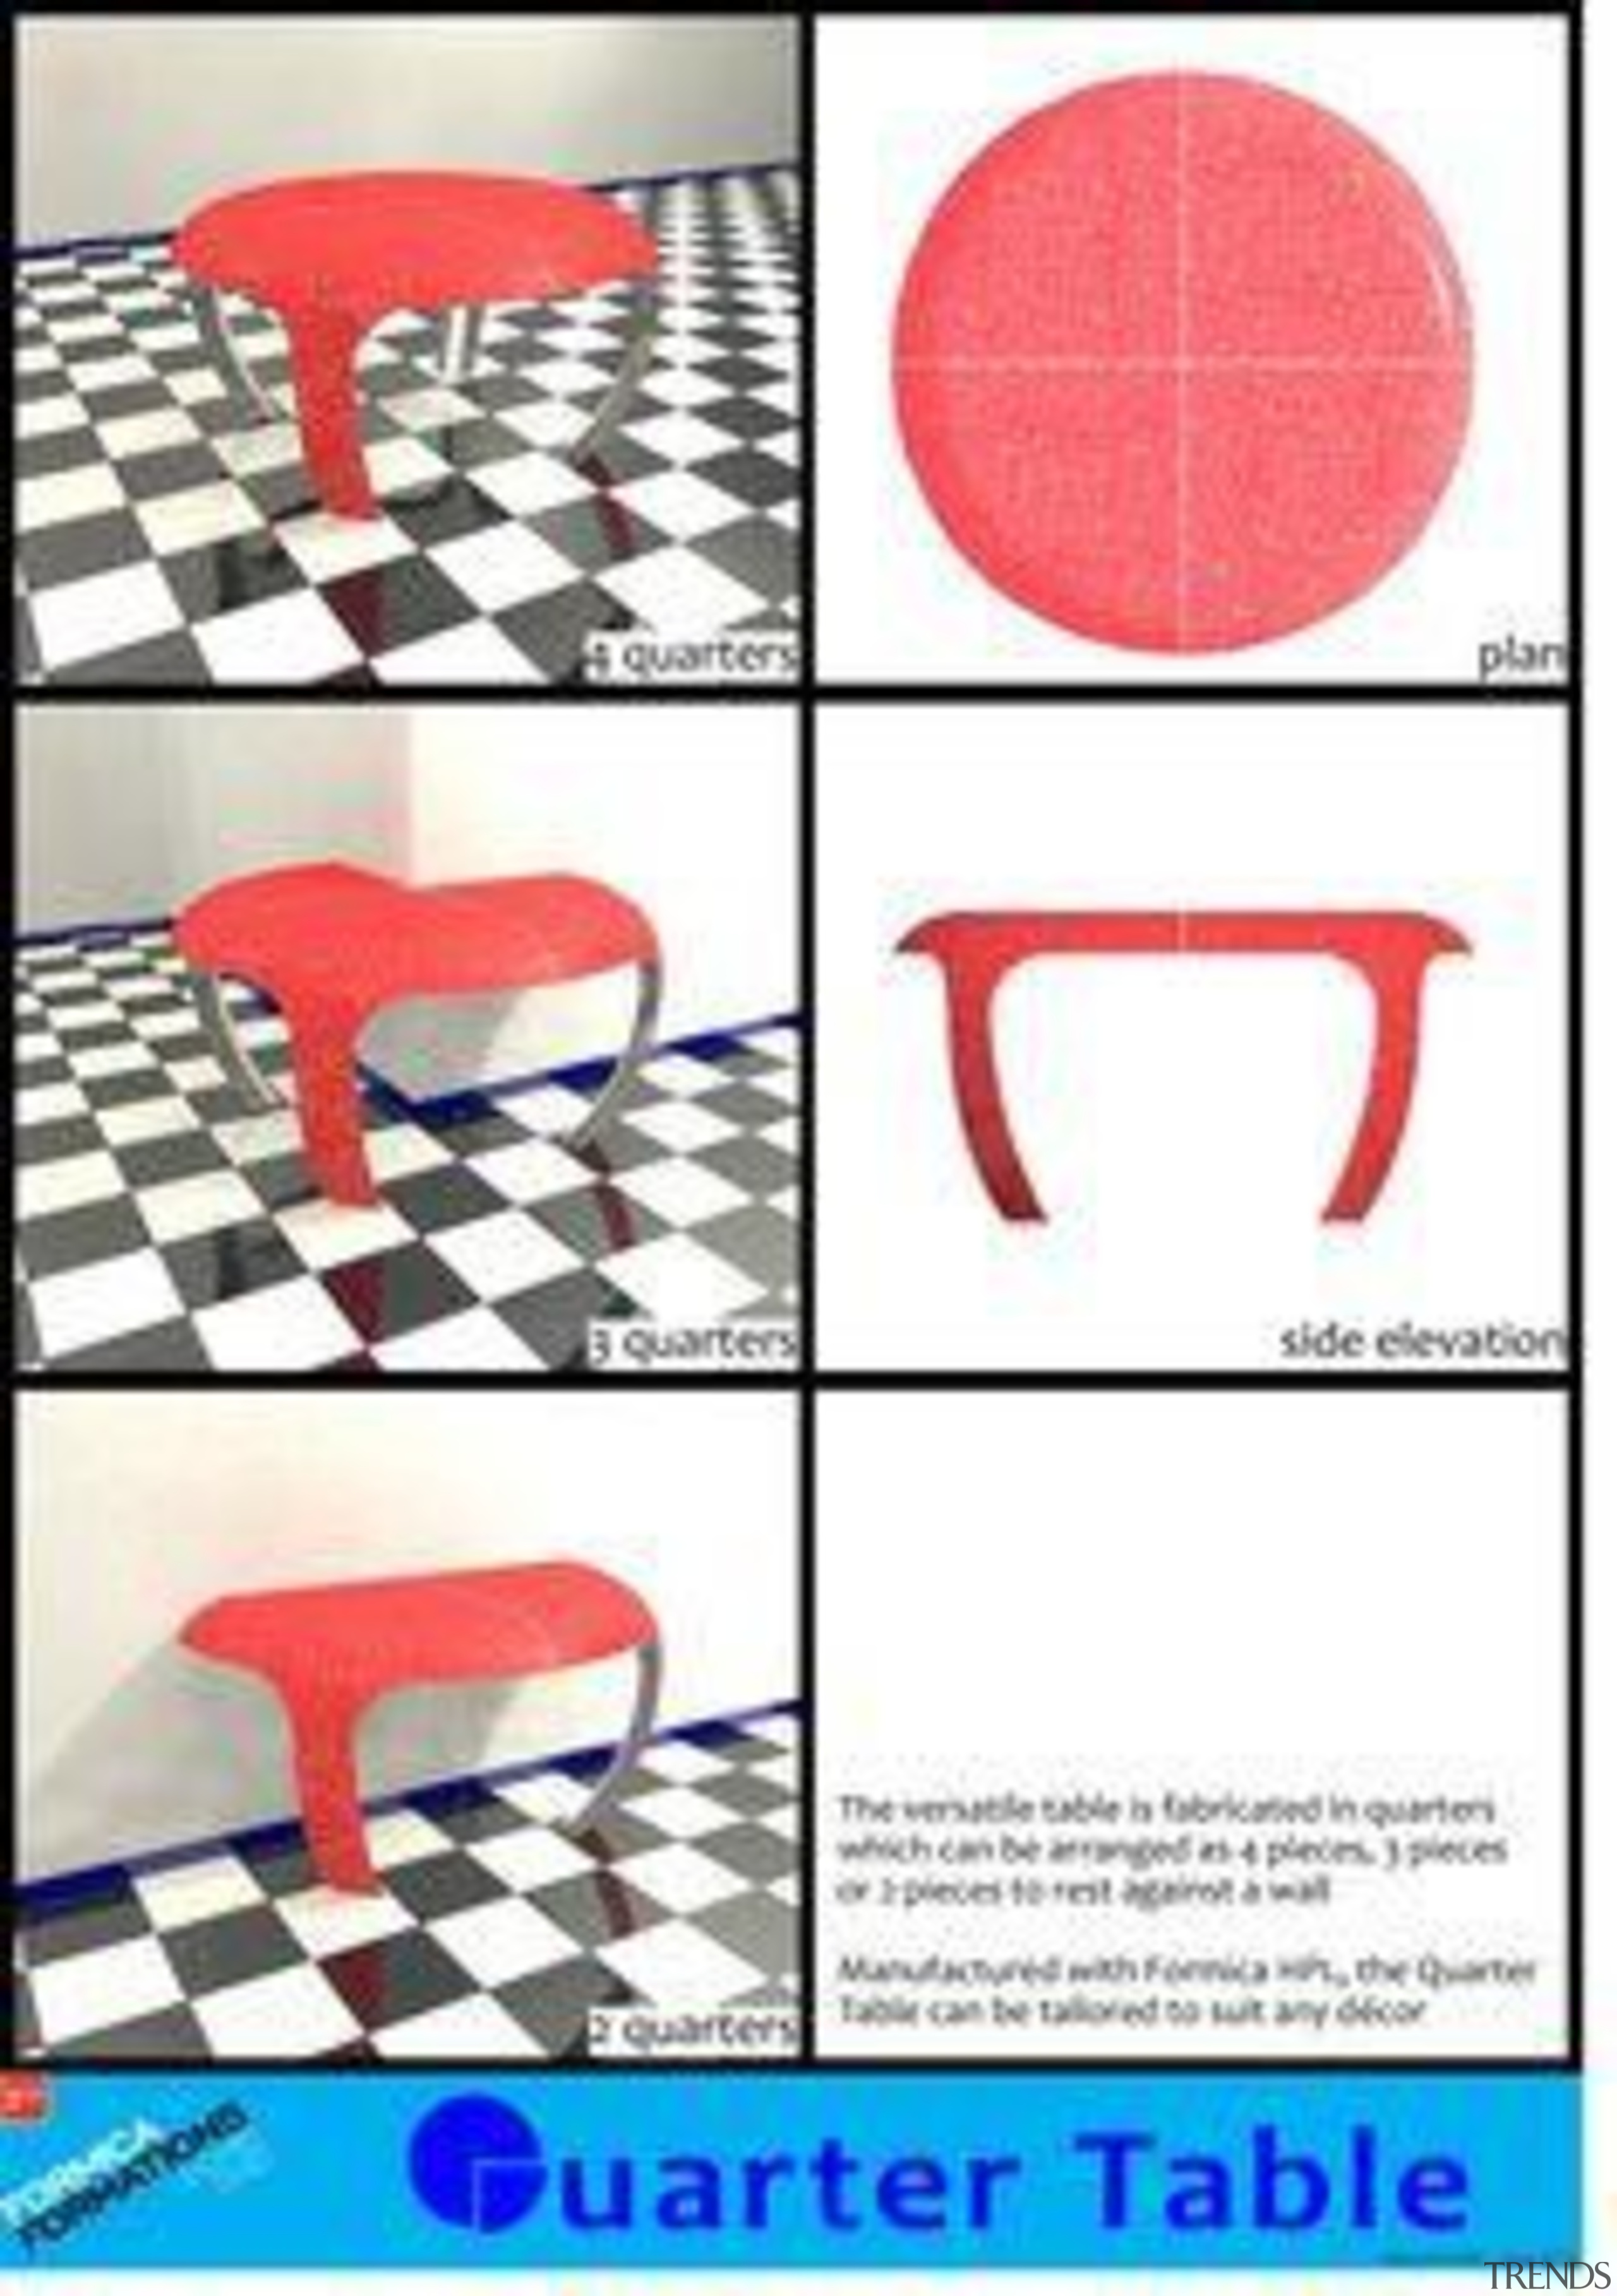 by Malcolm Duff - Quarter Table - chair chair, design, font, furniture, line, pattern, product, product design, red, table, text, white